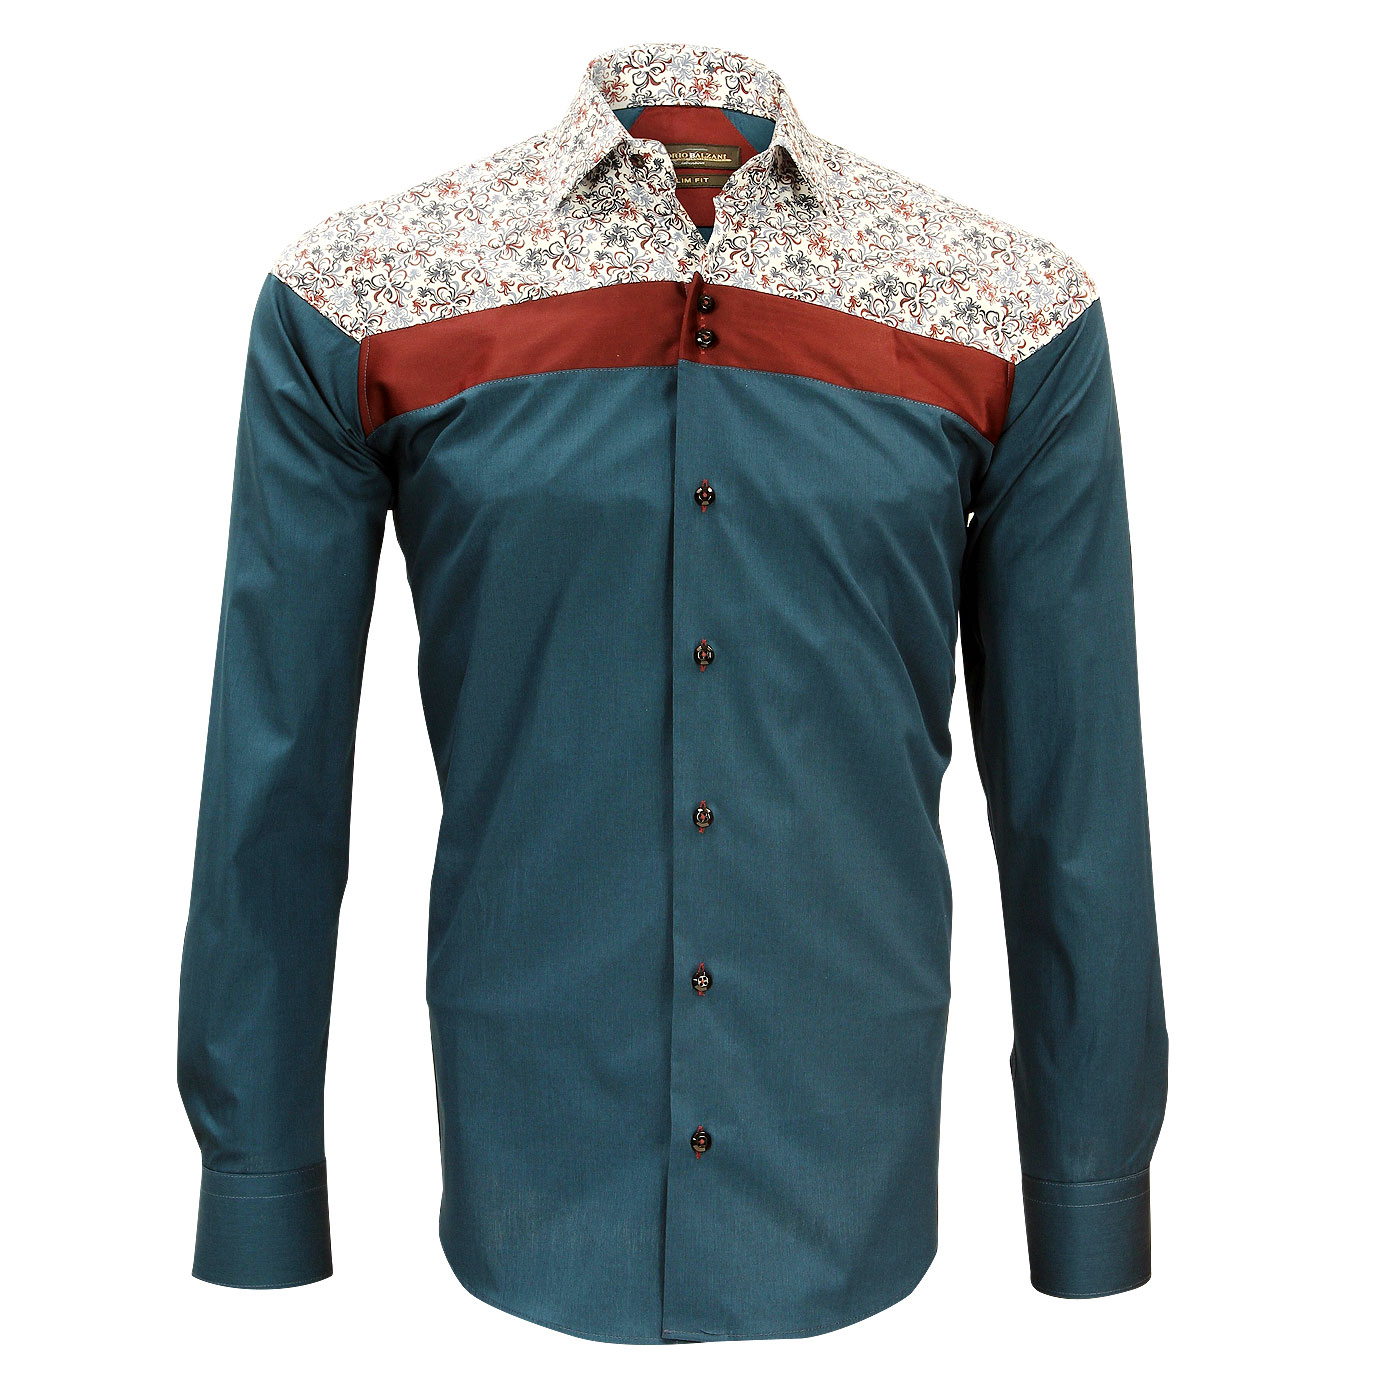 Long sleeve men's shirt, available on: WebMenshirts